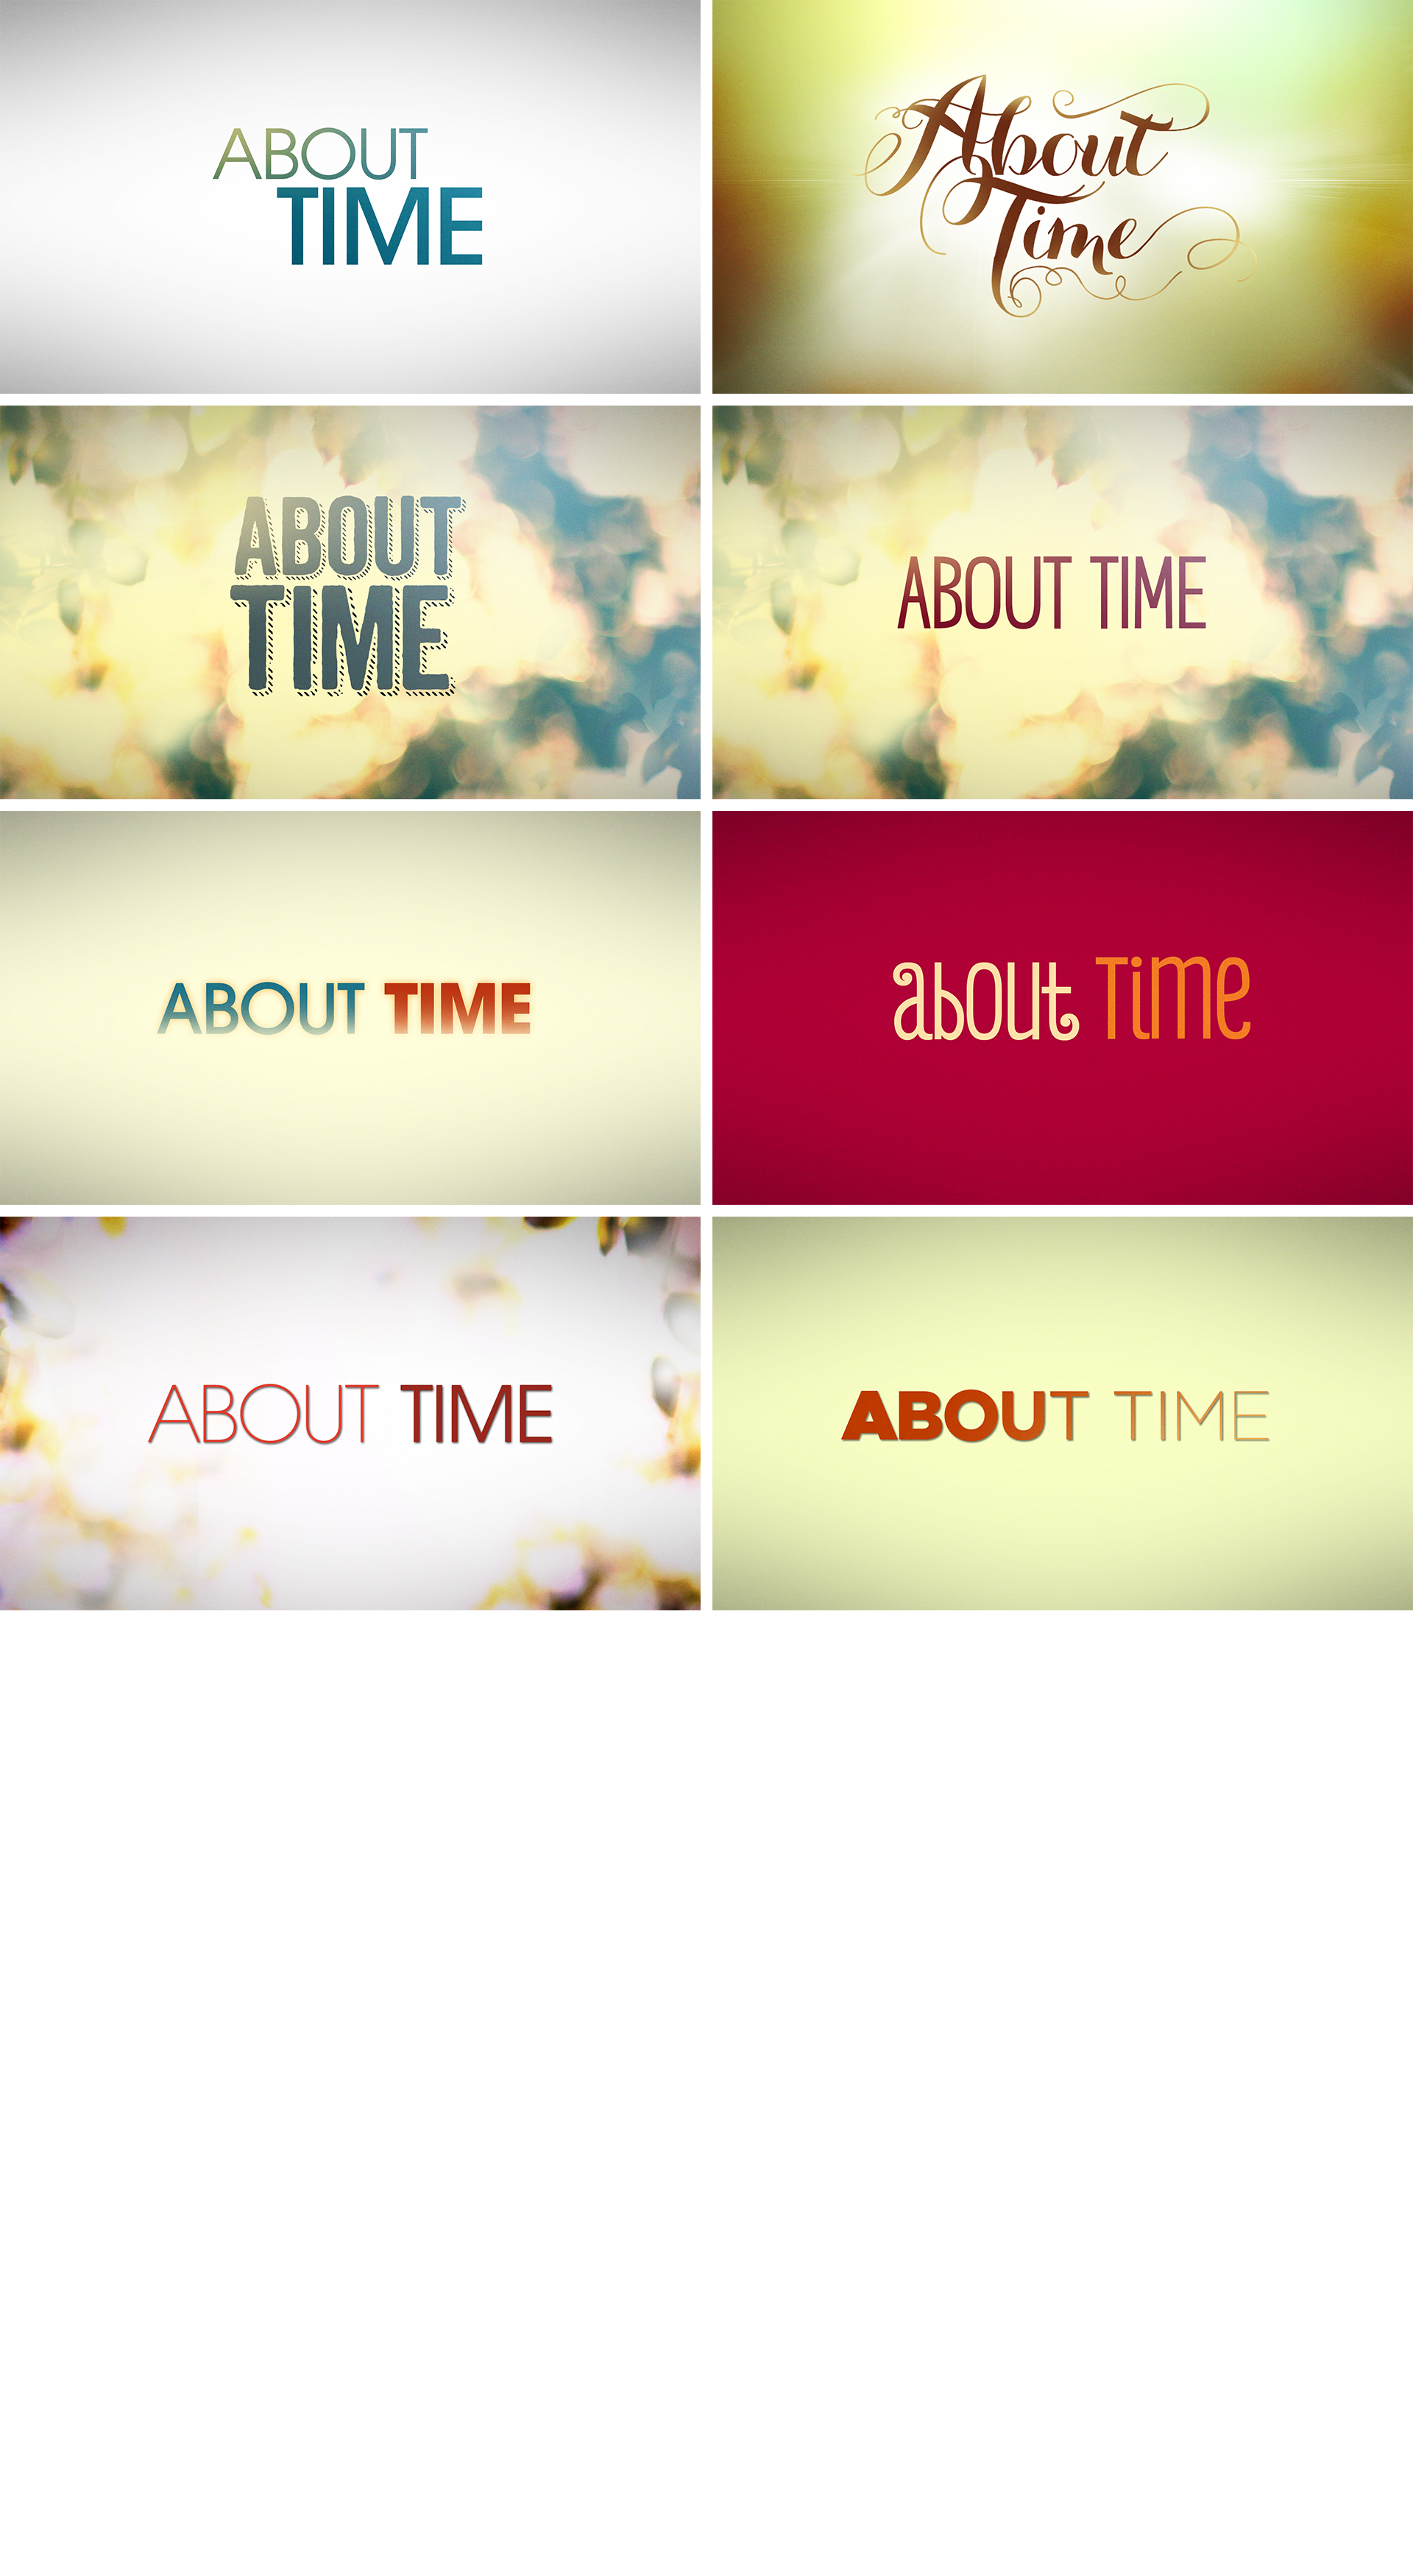 ABOUTTIME_TITLES